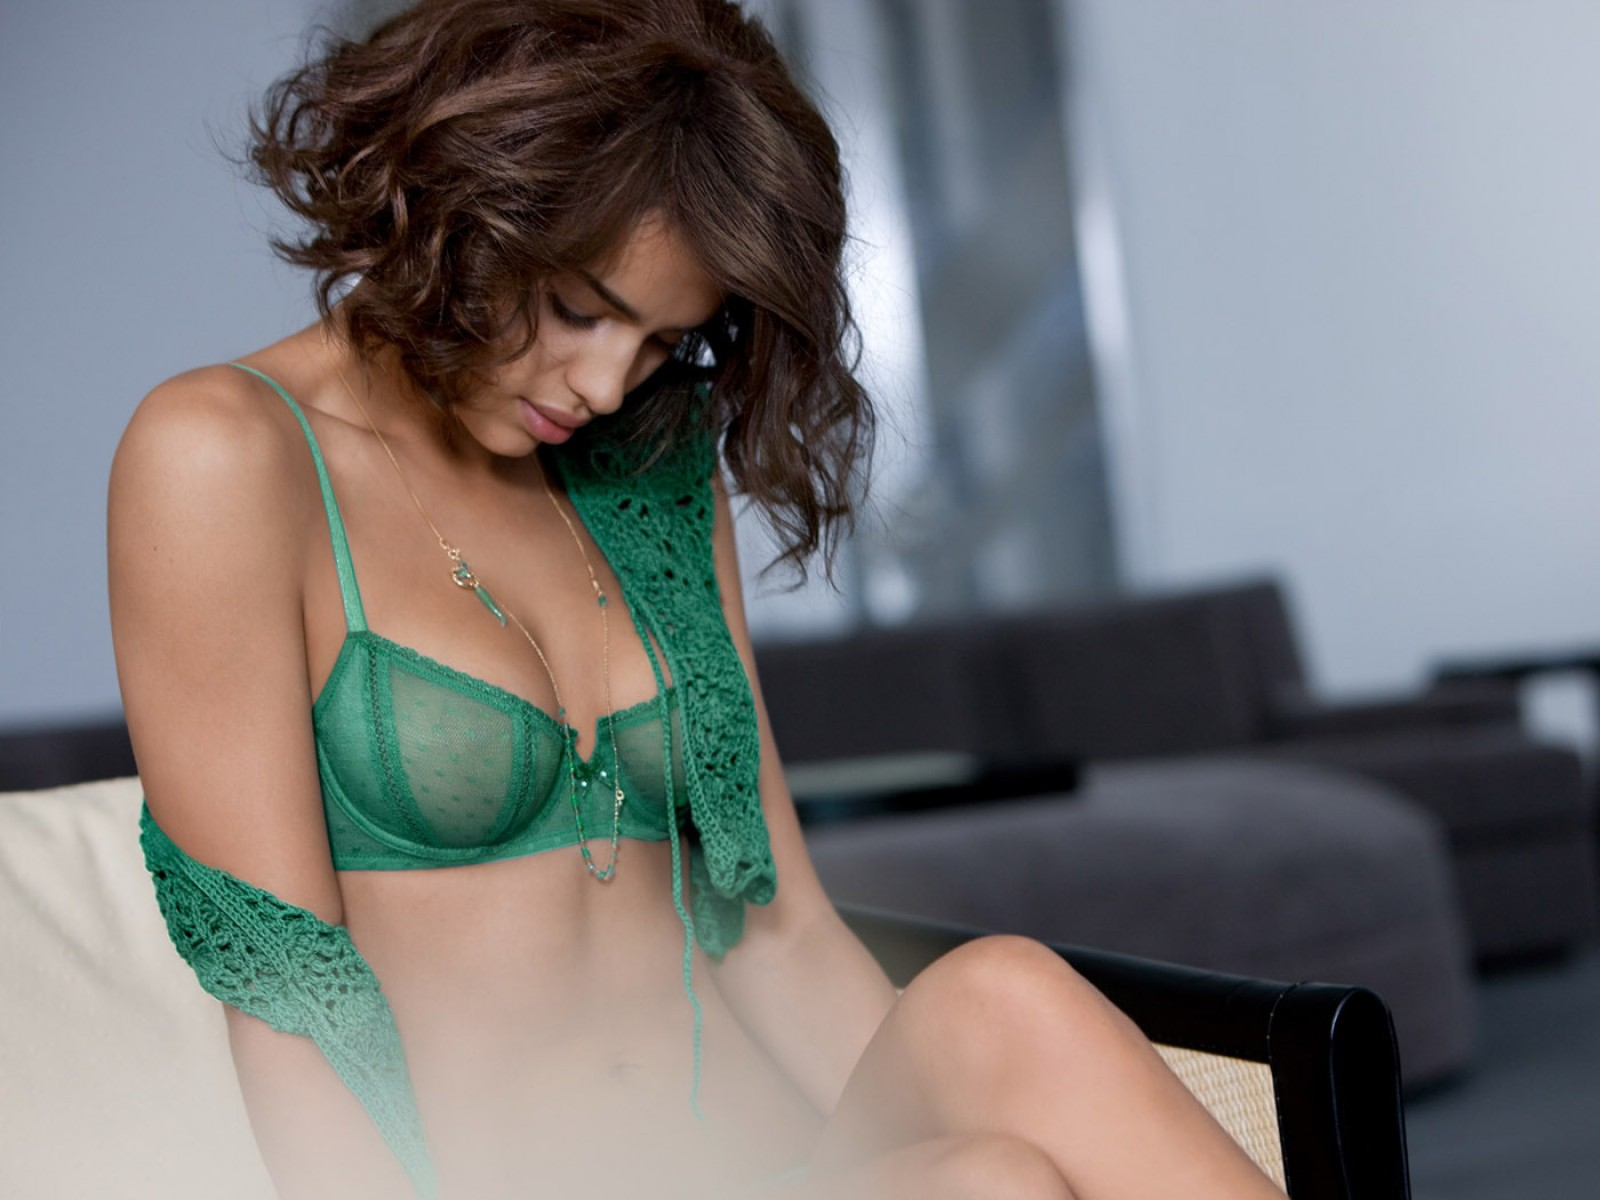 Green,bra With Crociered Top